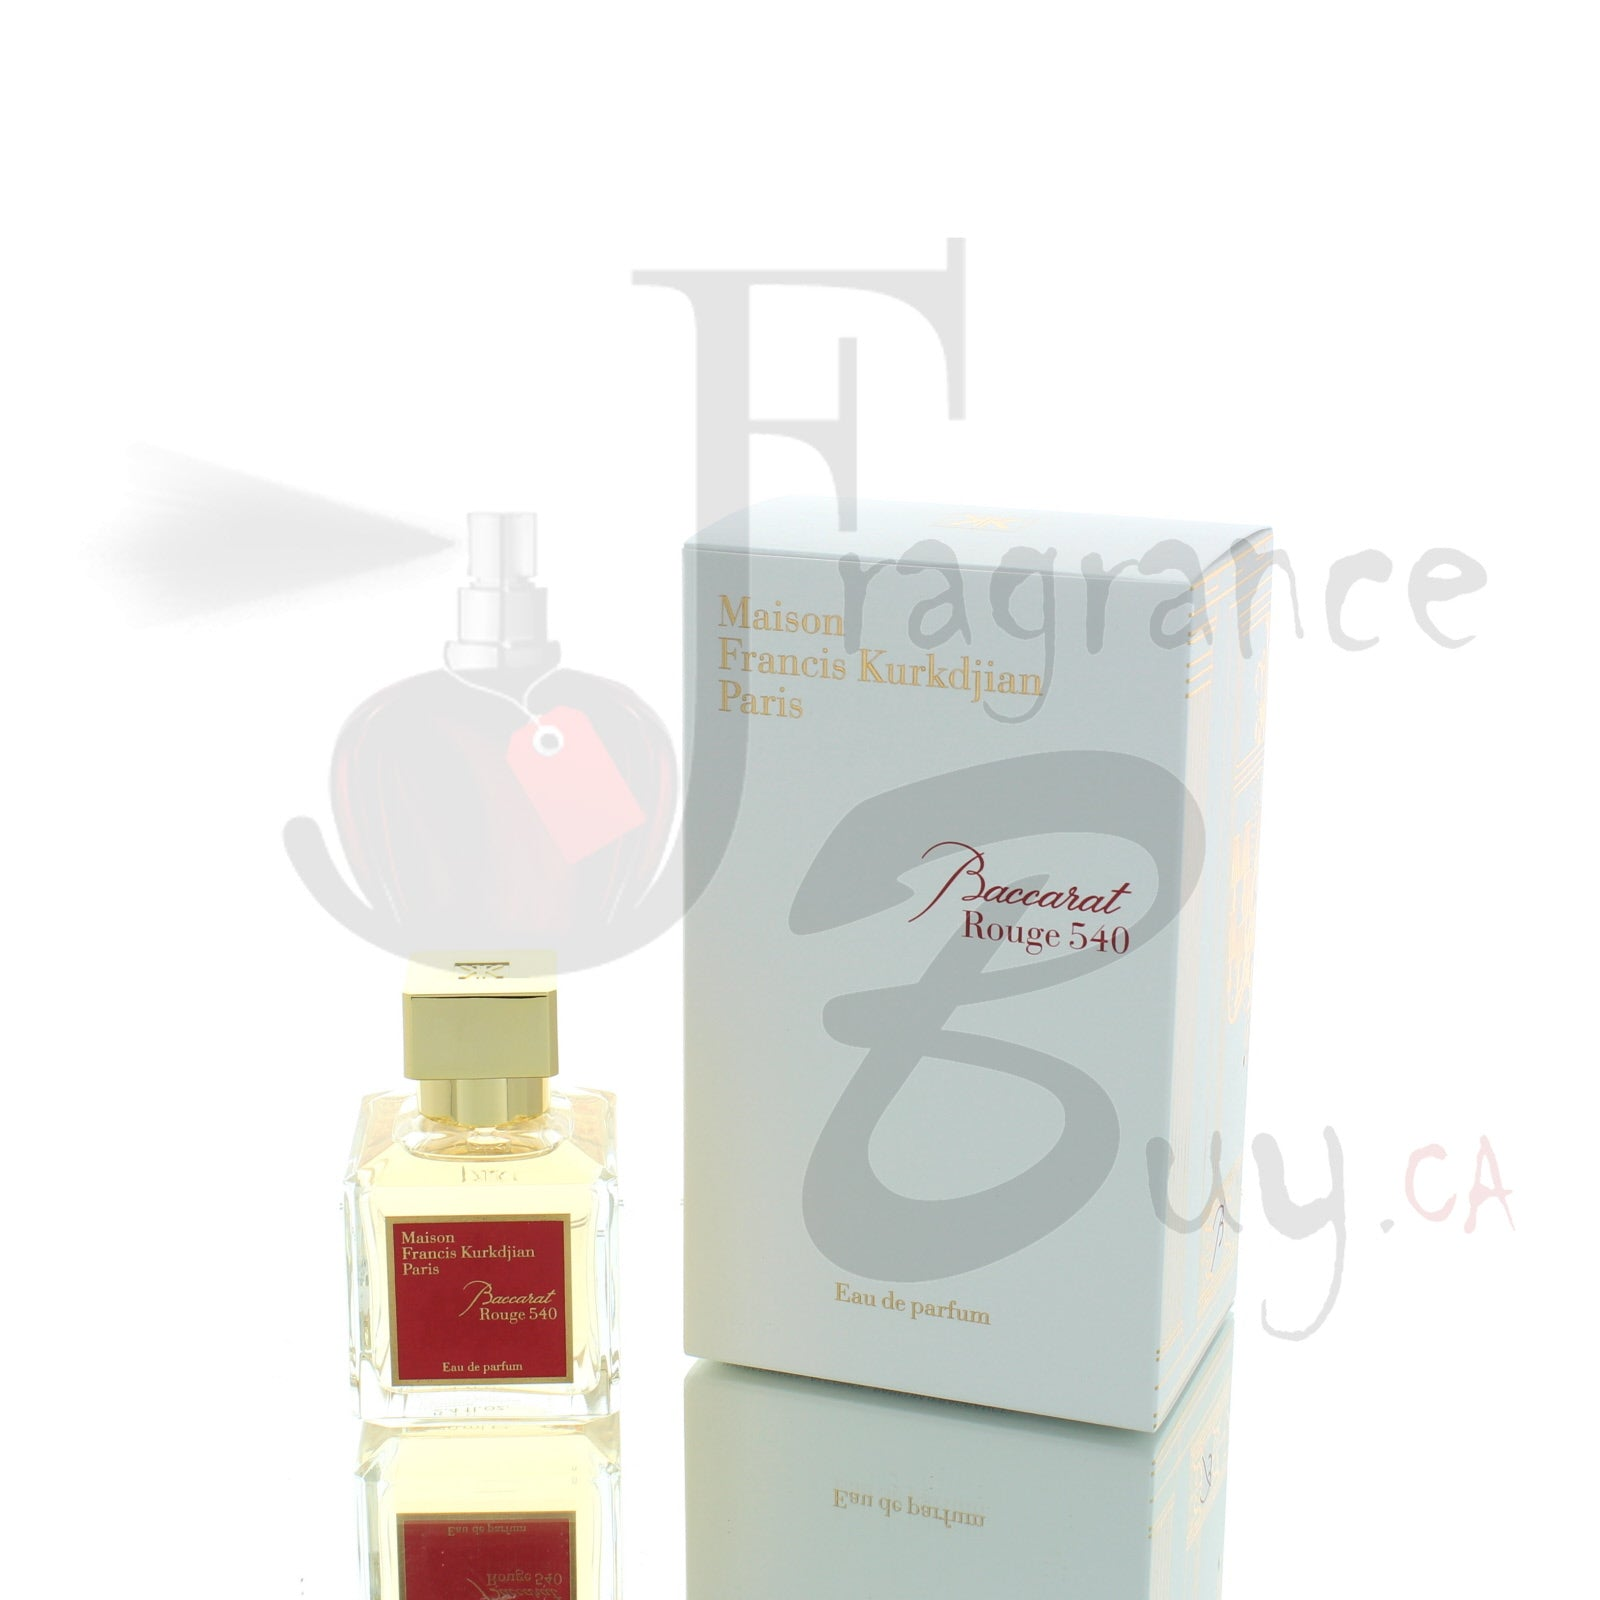 Francis Kurkdjian 540 Baccarat Rouge For Man/Woman